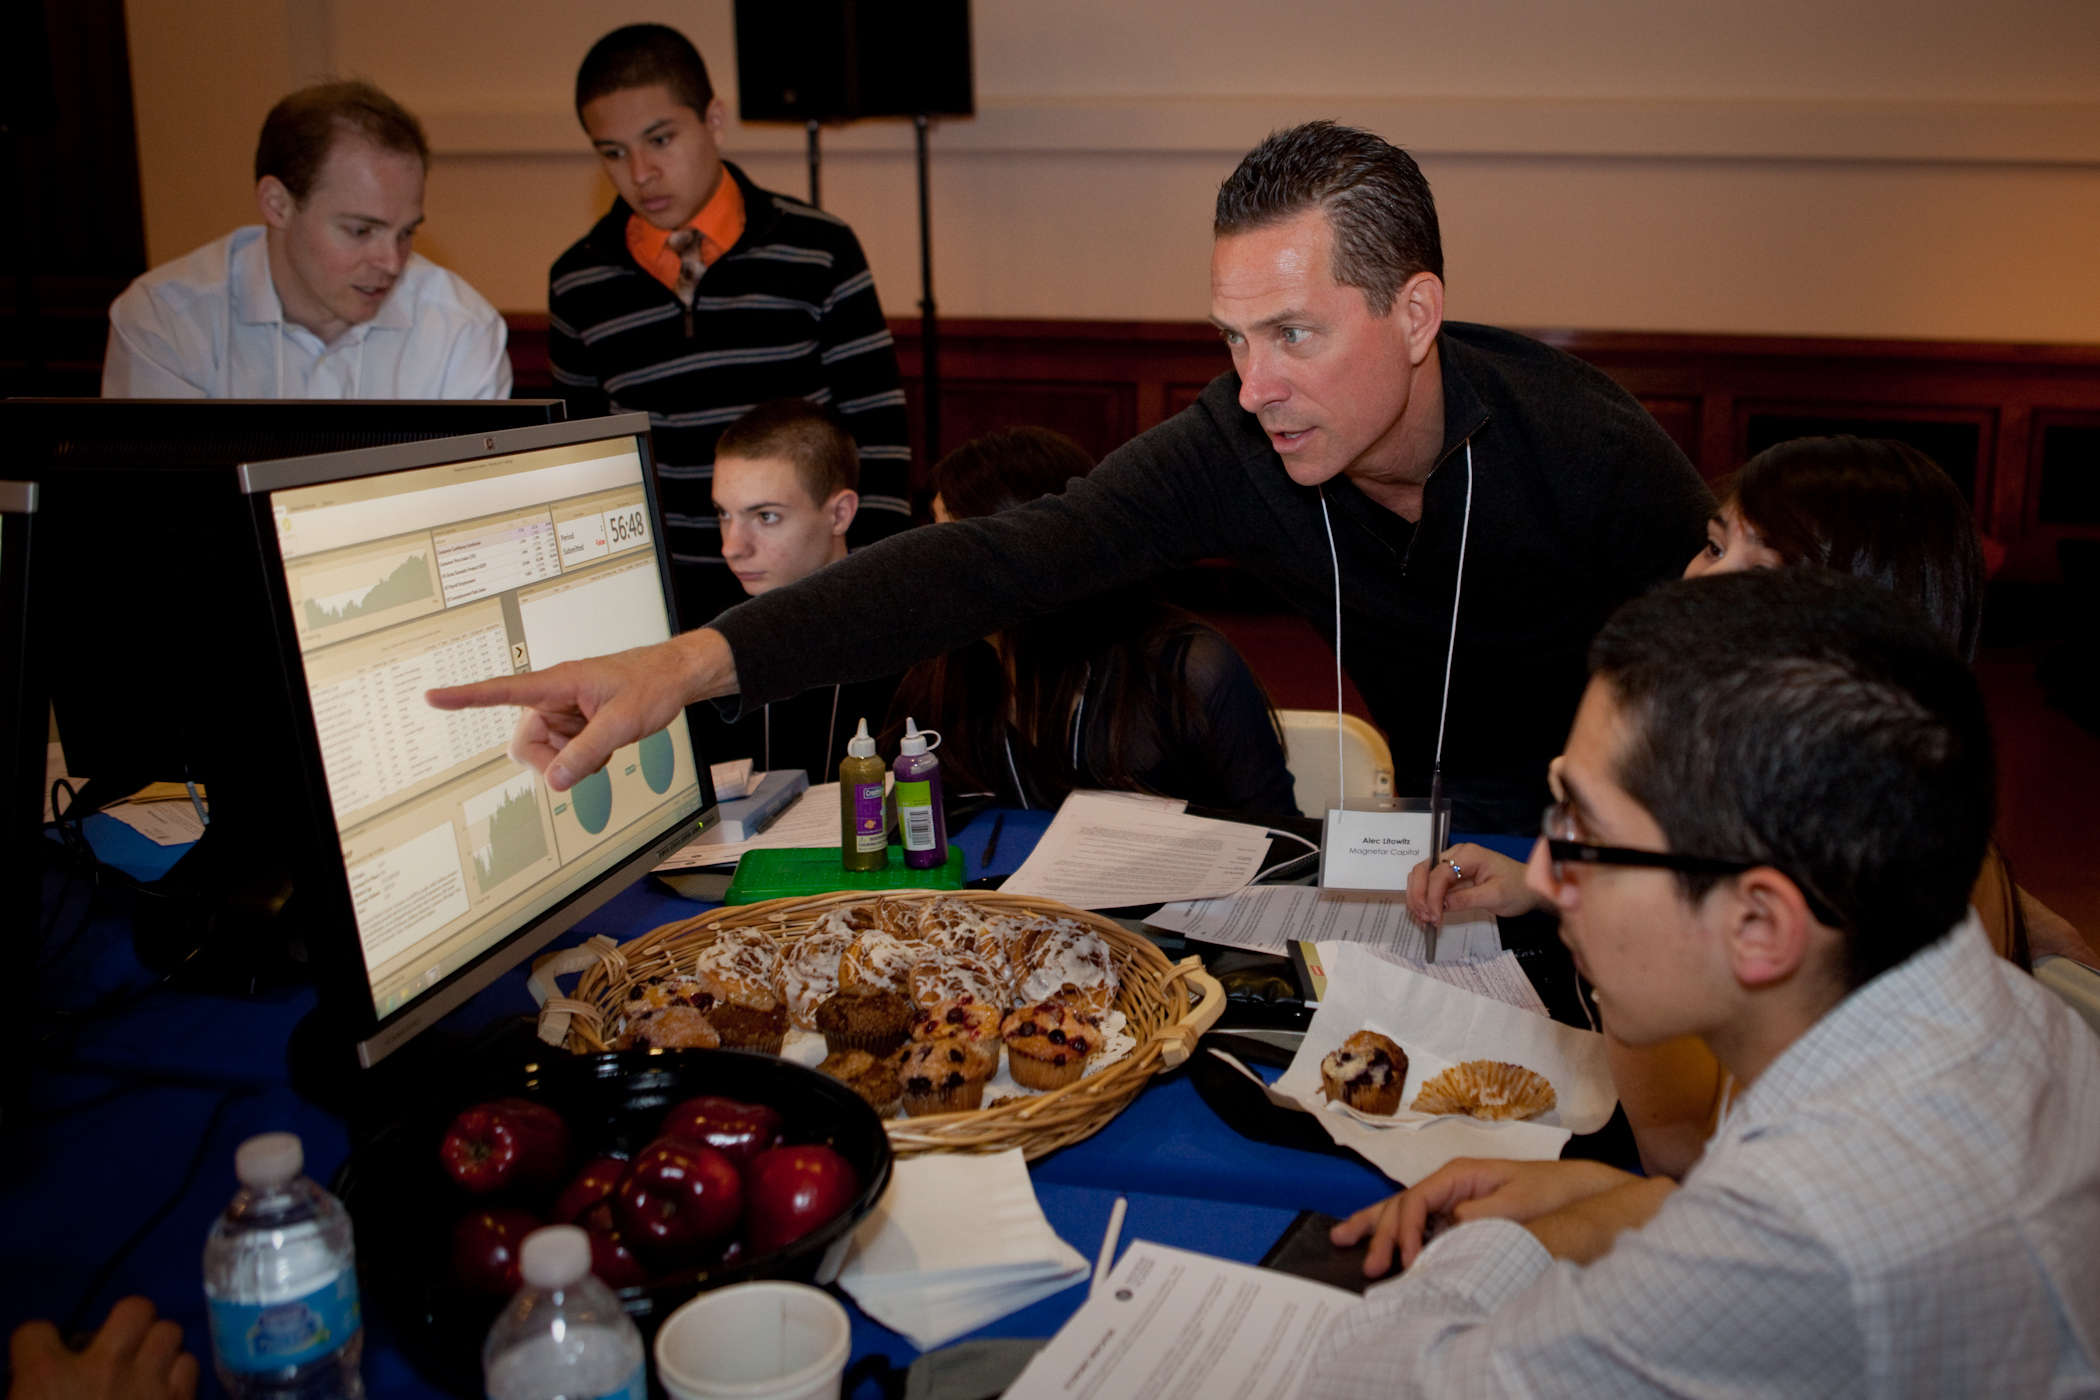 Alec Litowitz, founder and CEO of Magnetar Capital, works with students during the Magnetar Ultimate Stock Trading Challenge. Nearly 100 Chicago high school students took part in the competition, which raised $9,000 for Chicago public high schools. (Photo: Business Wire)